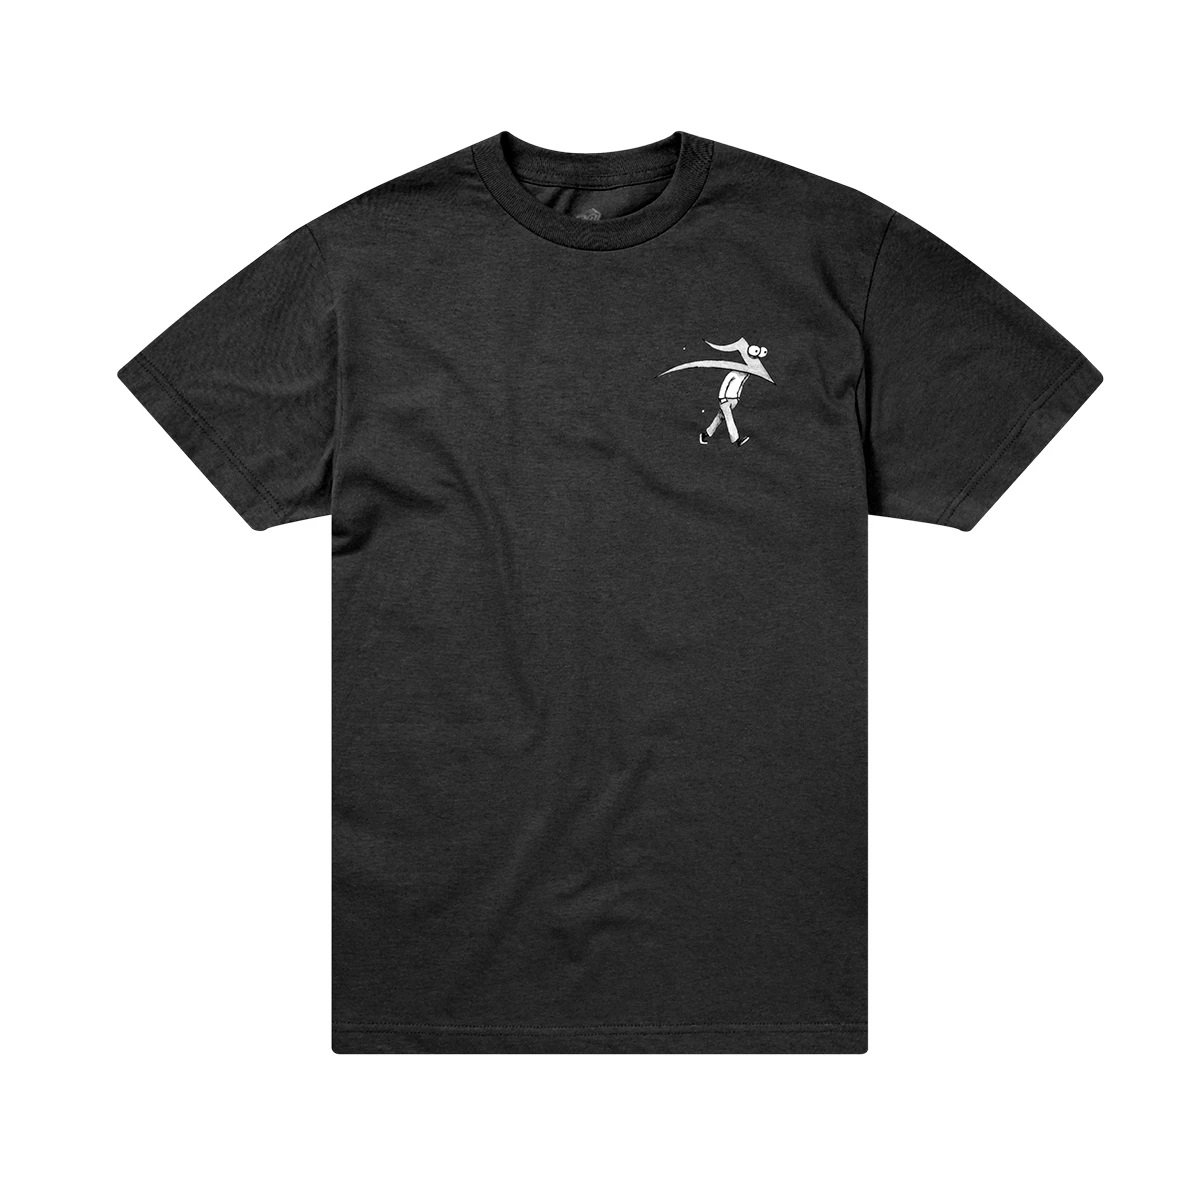 Lakai Guy Tee s/s Black